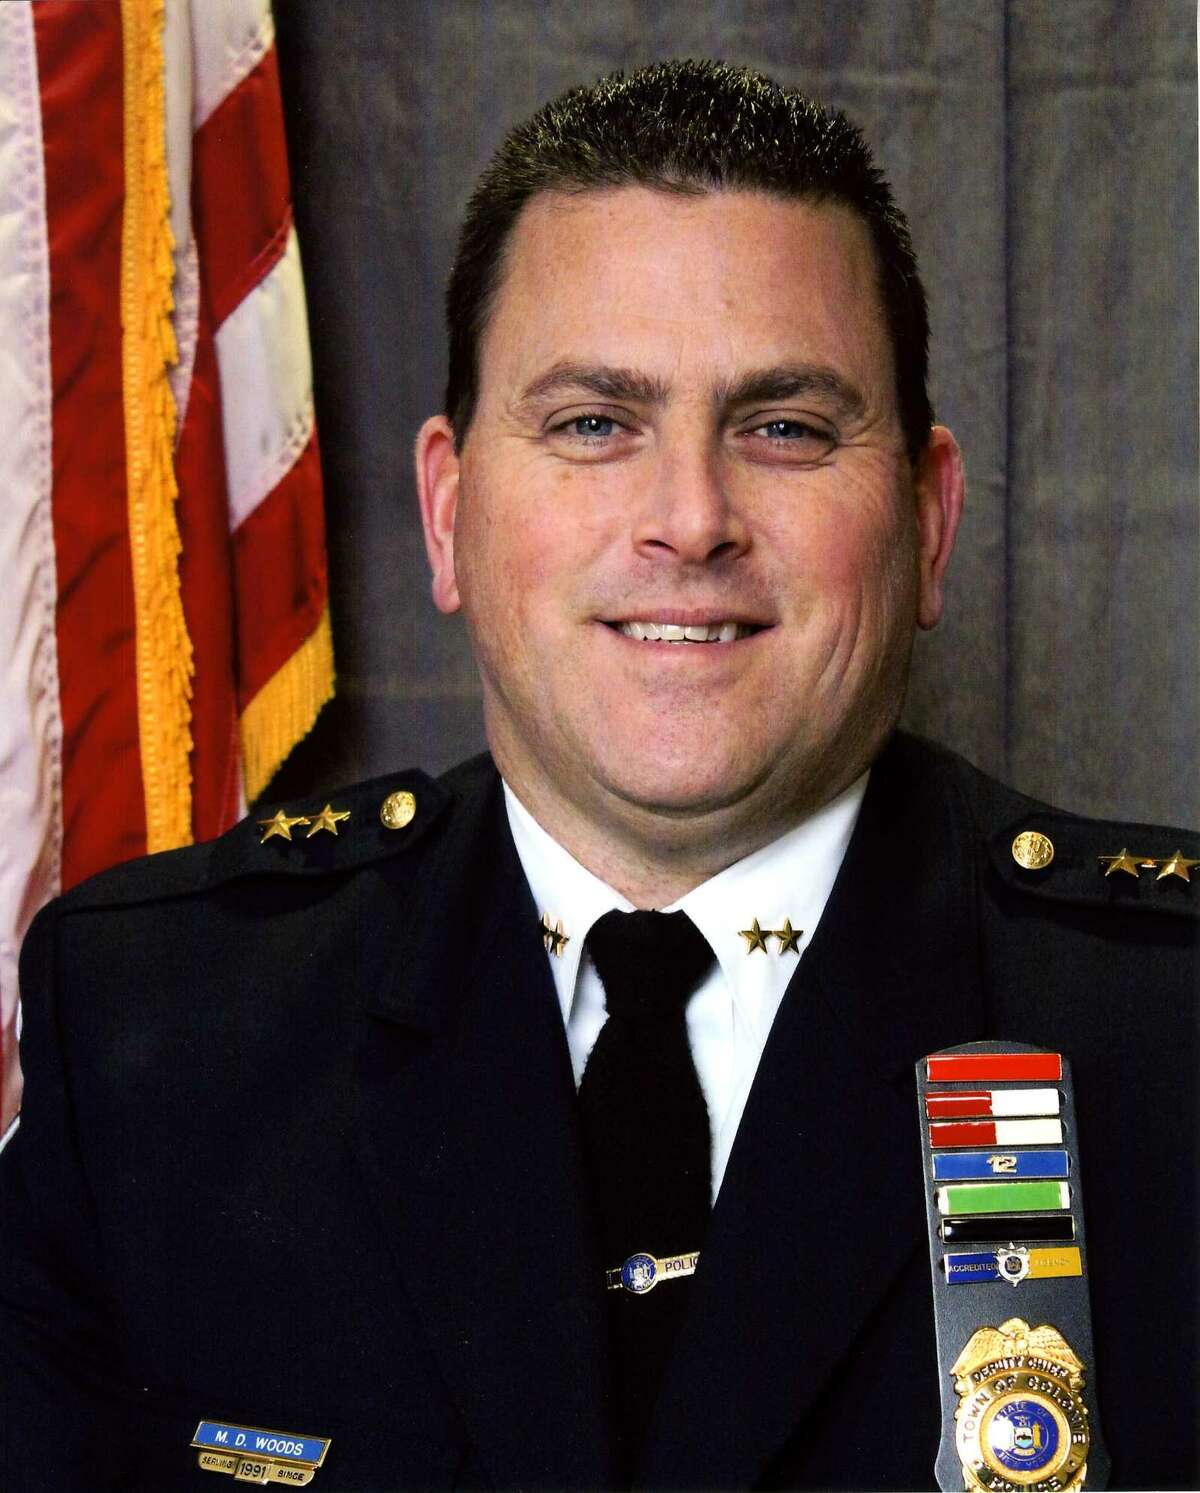 Colonie Deputy police Chief Michael Woods has been promoted to chief.